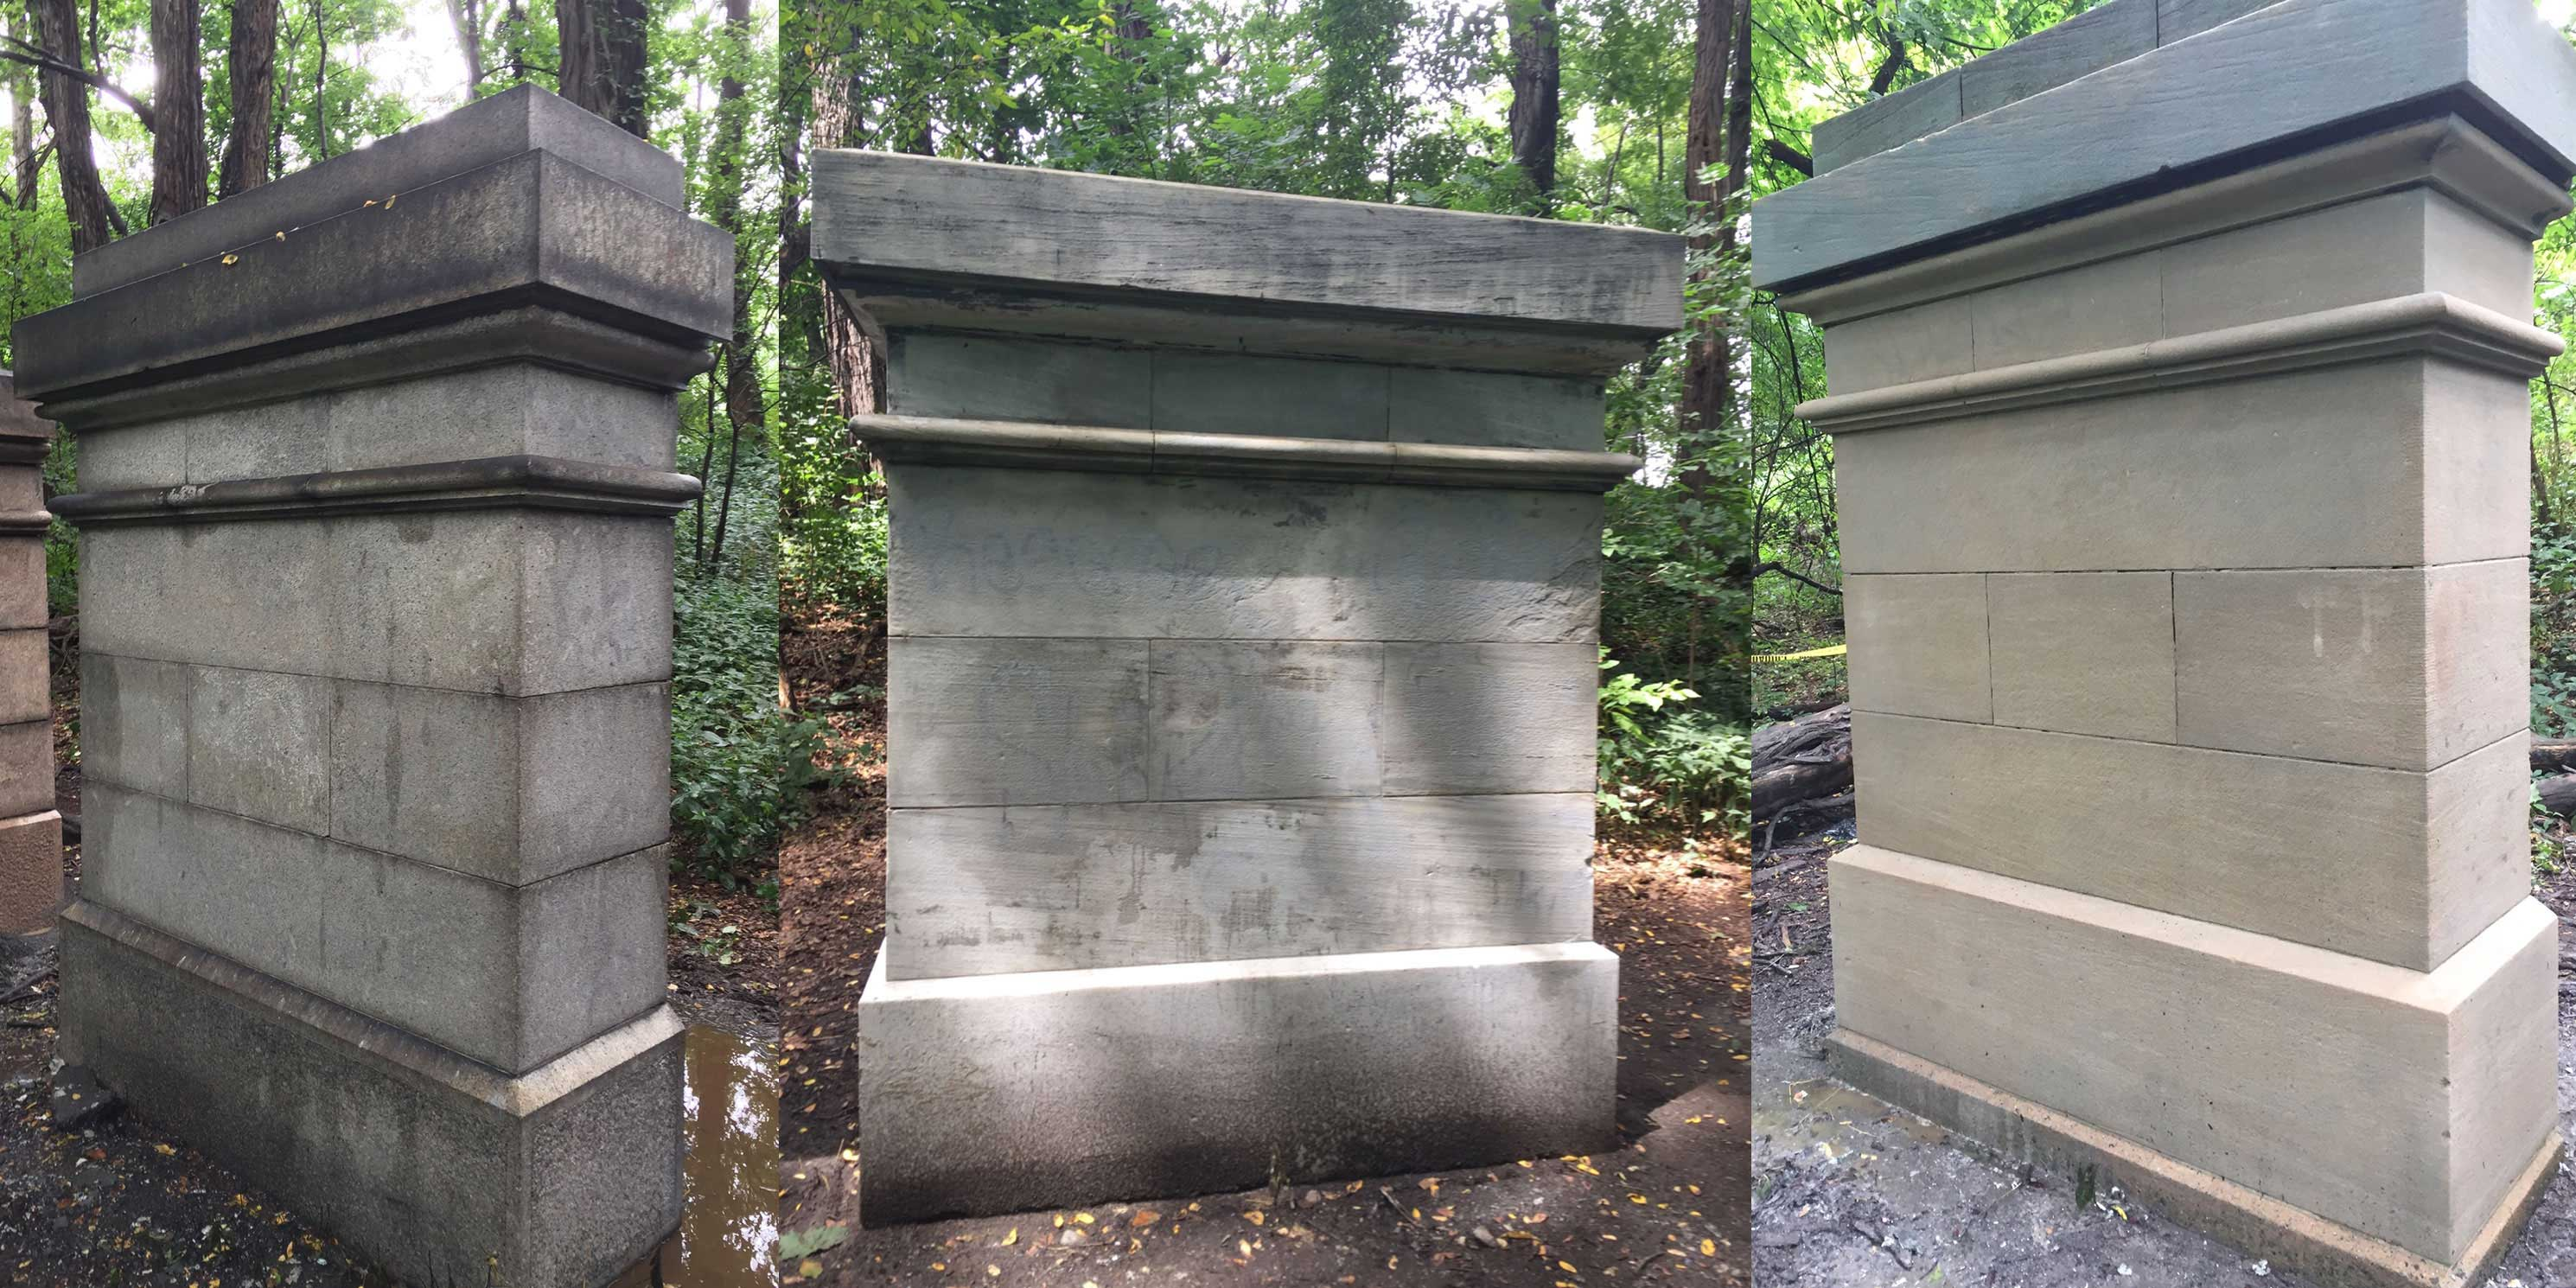 The Grand Central Stones in Van Cortlandt Park after renovation. Photo: Tatti Art Conservation.